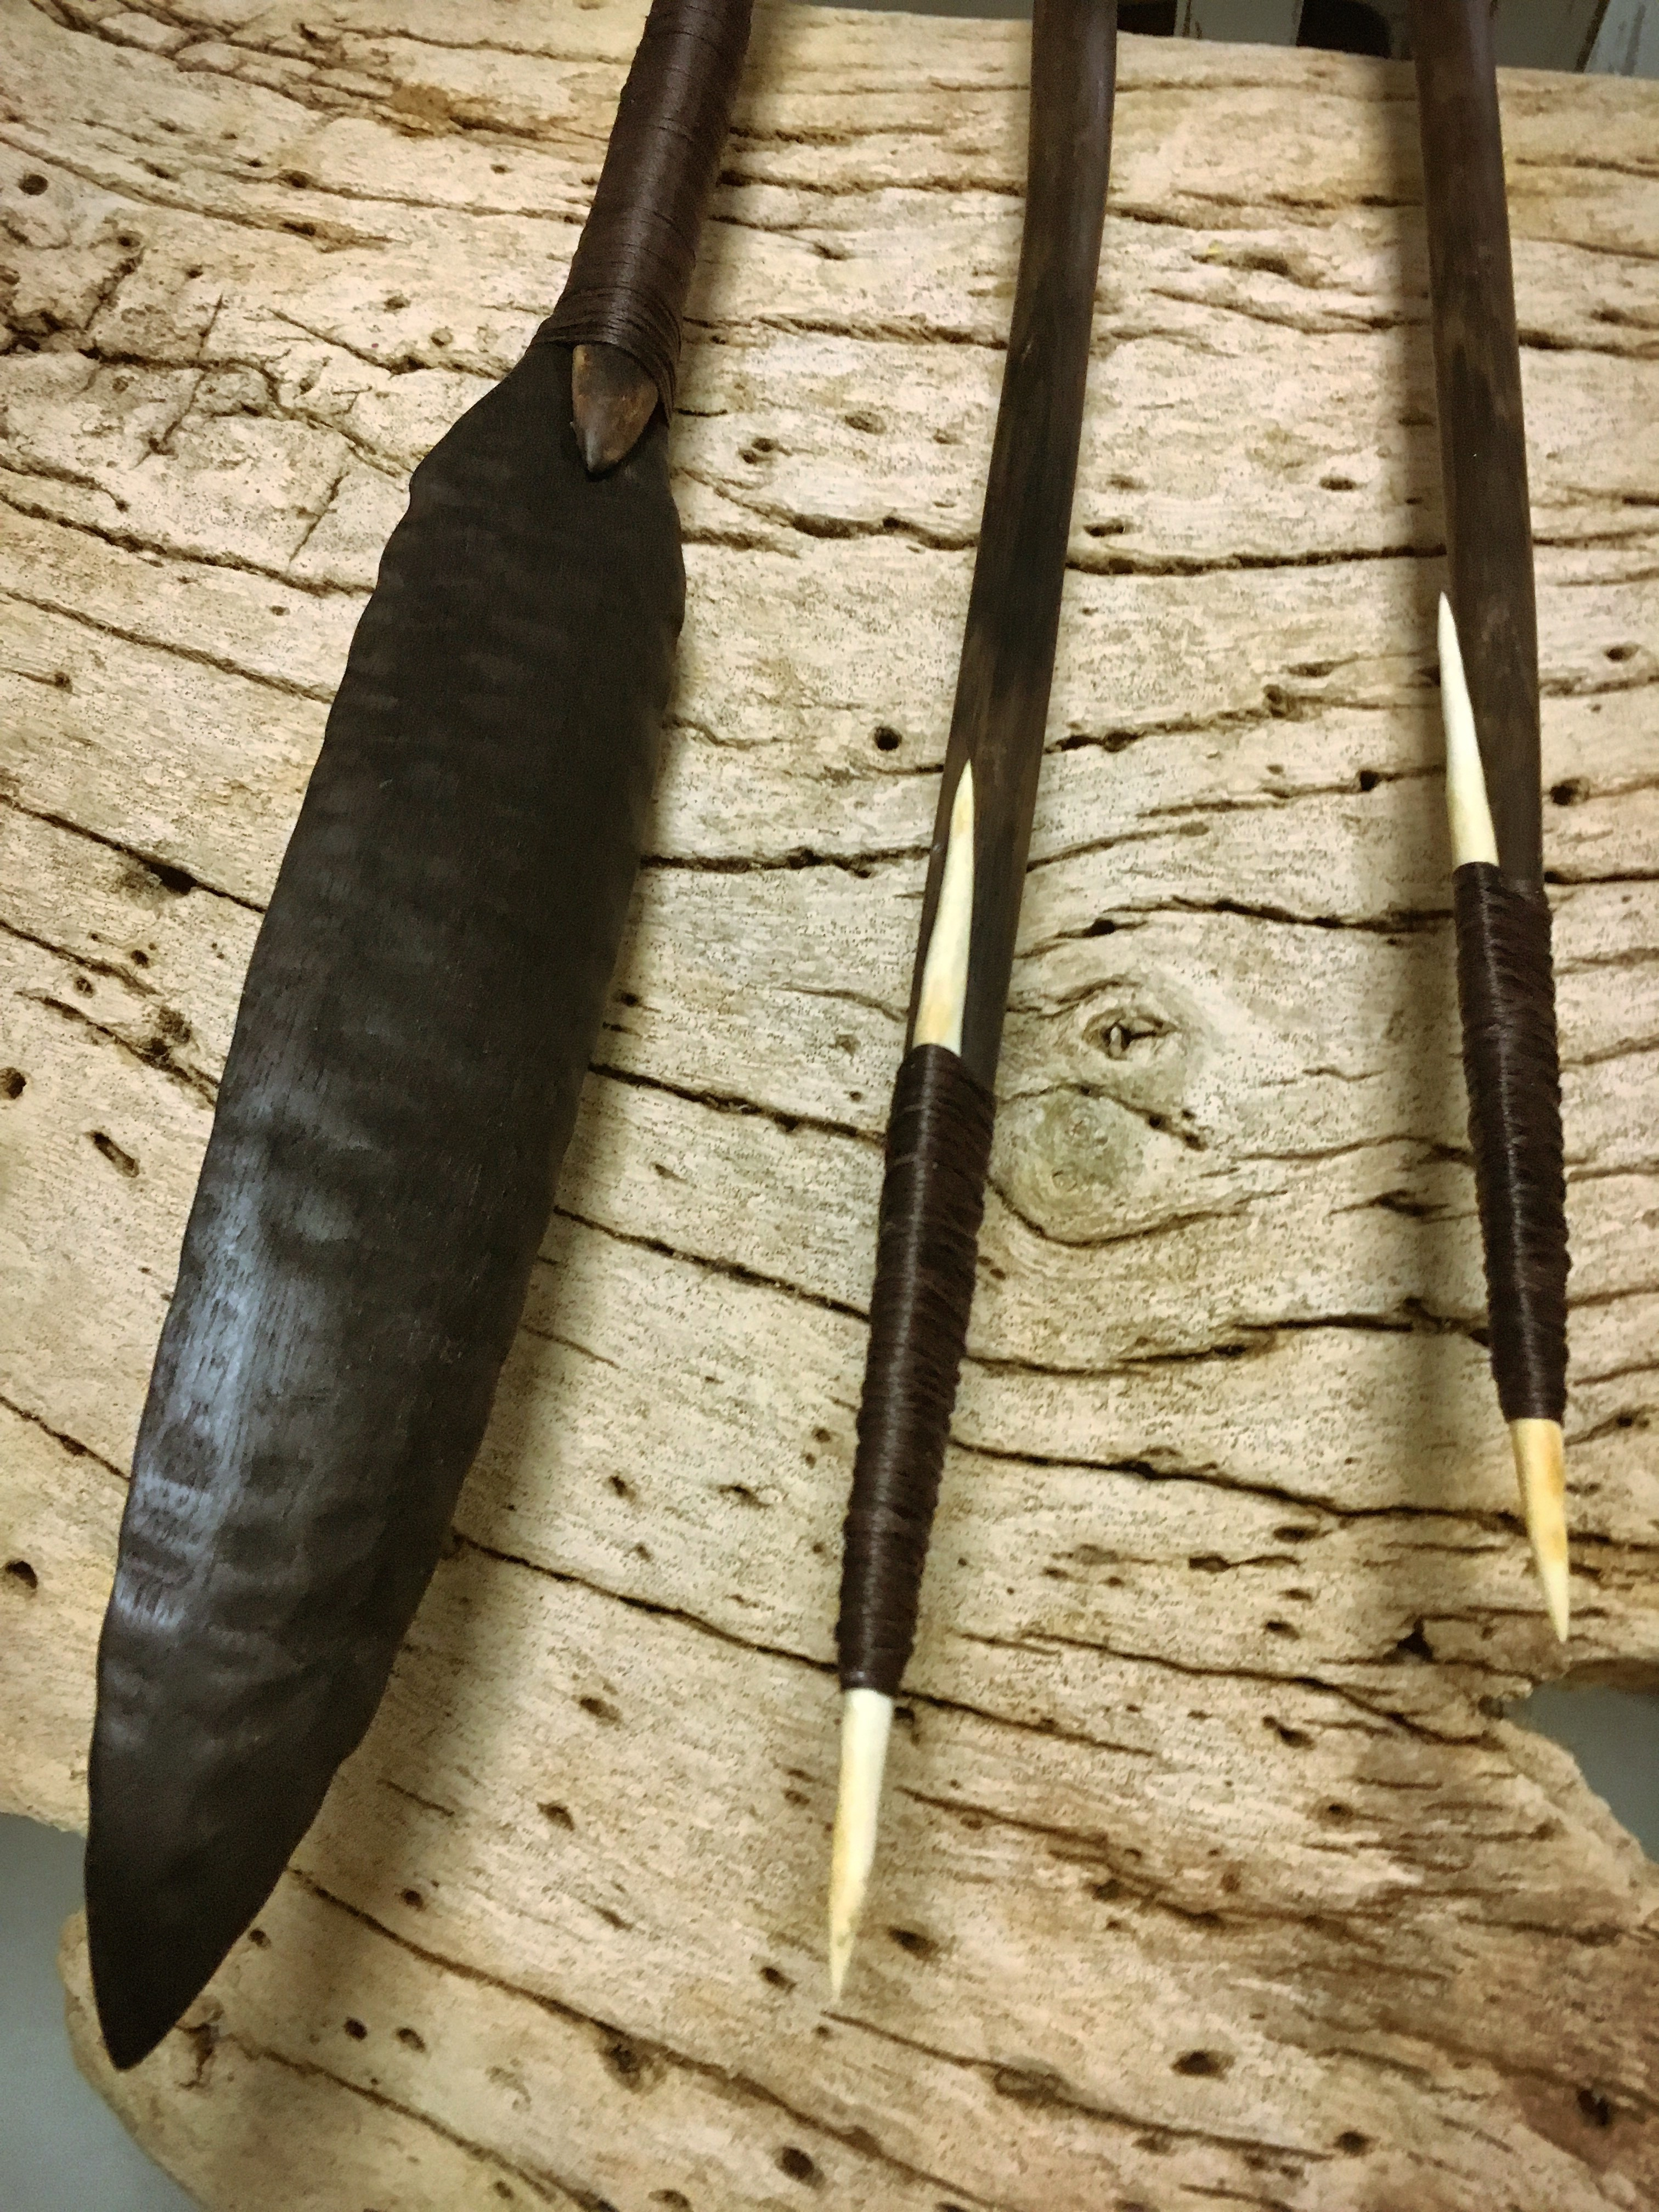 the tips of three spears rest on a smoothed out wooden plank, the left most spear is tipped with a flat broad head the two right most spears are tipped with a thin fine bone head.